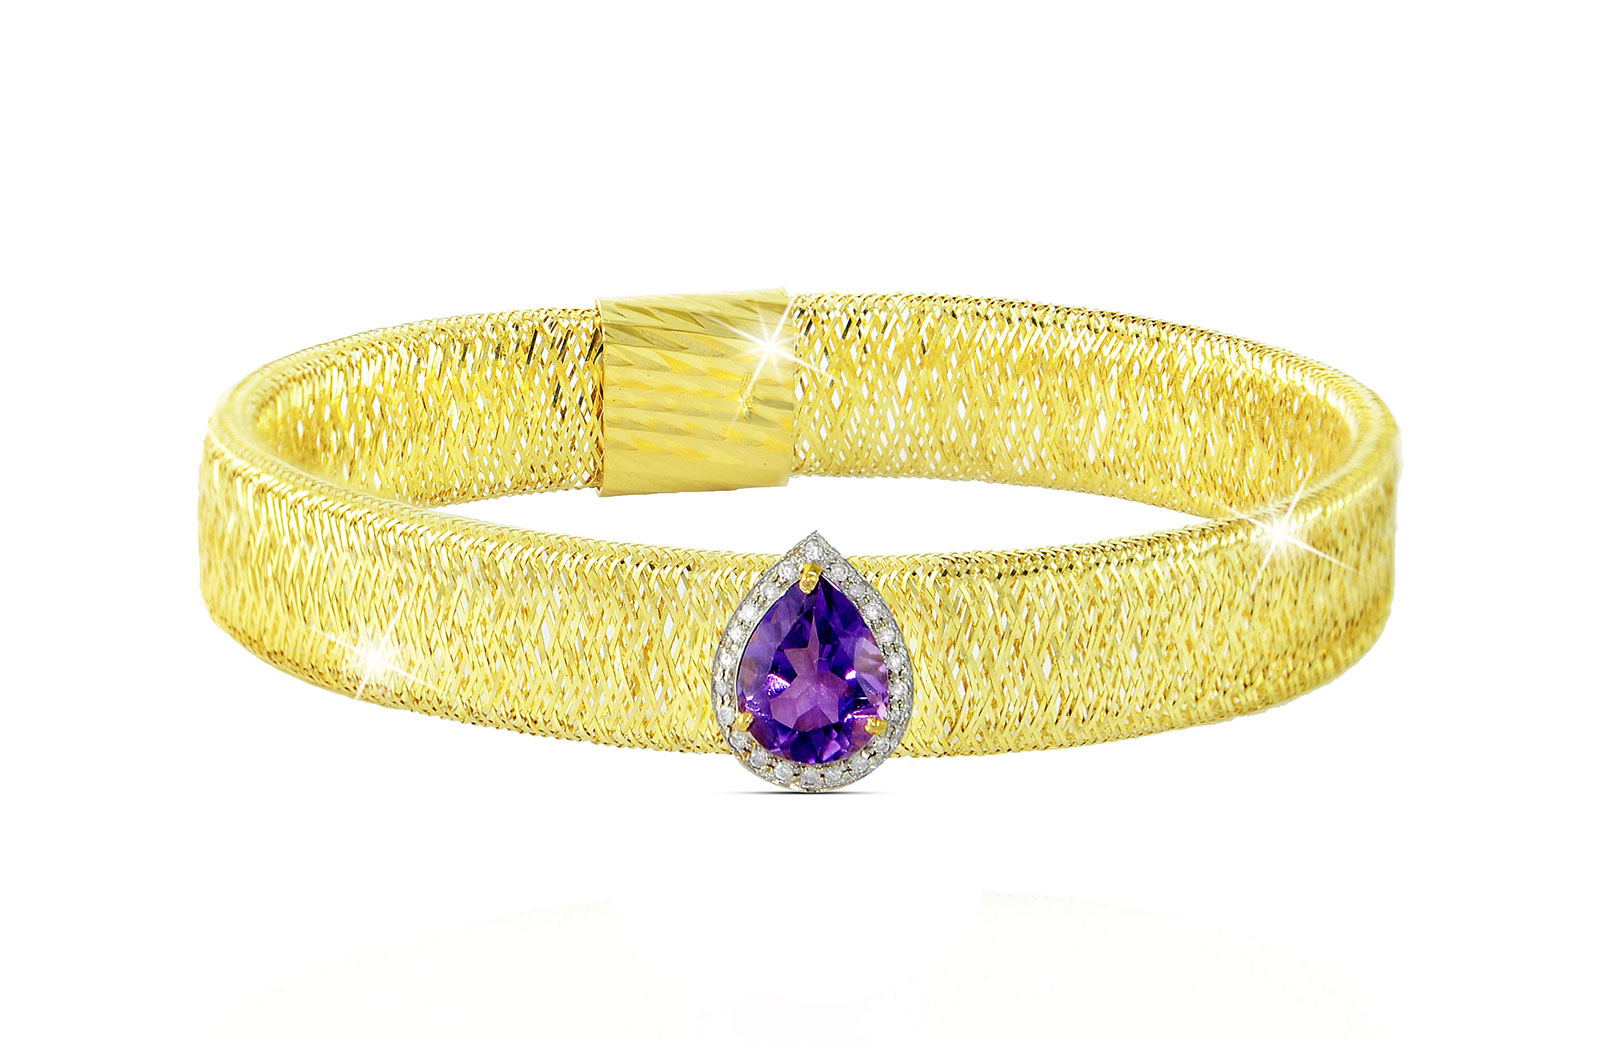 Vera Perla 18K Gold 0.12ct Diamonds, Amethyst Mesh Bracelet